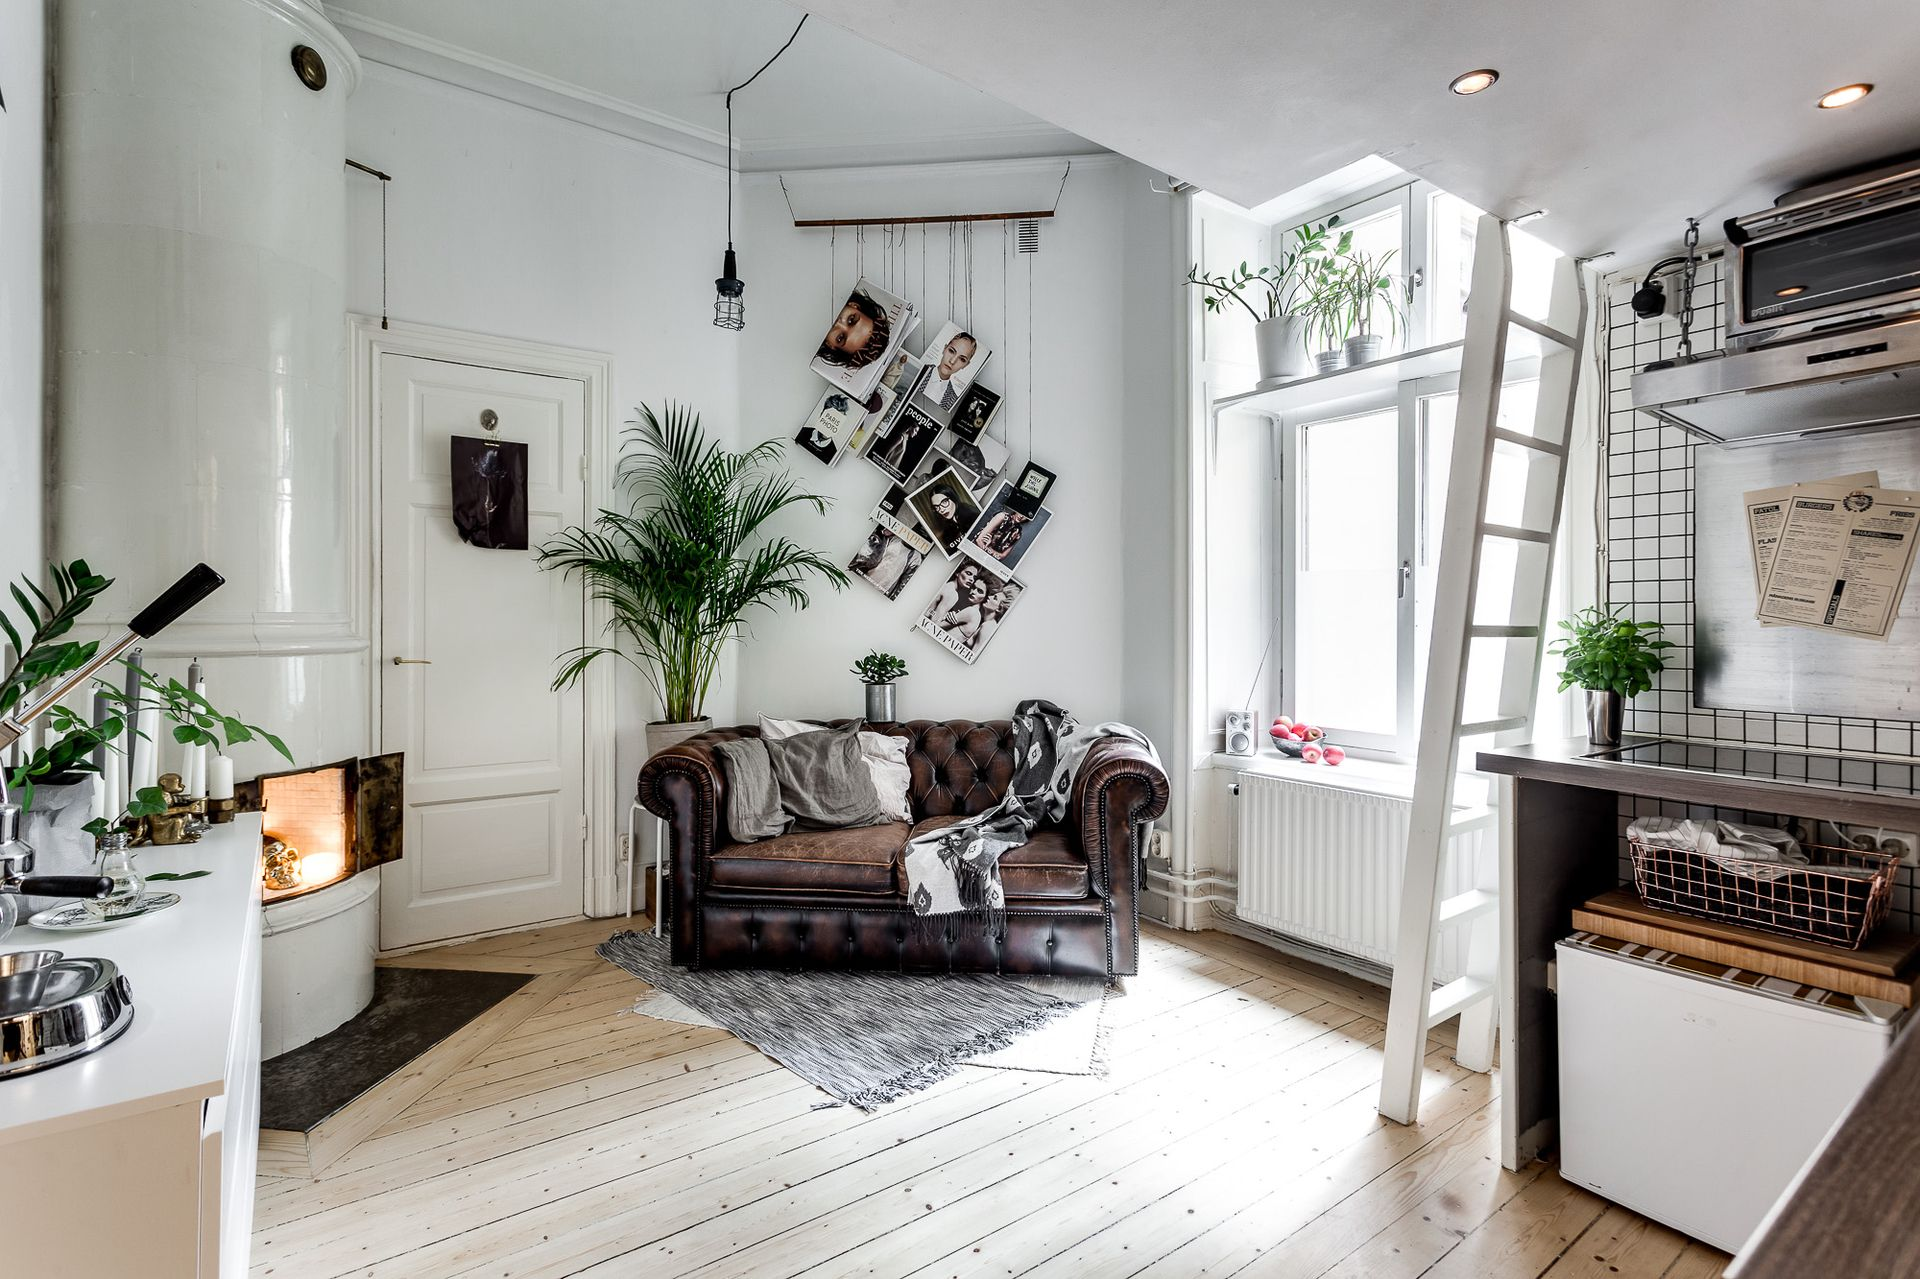 Superbe A Cool Tiny Studio Apartment With Chesterfield Sofa And Loft Bed